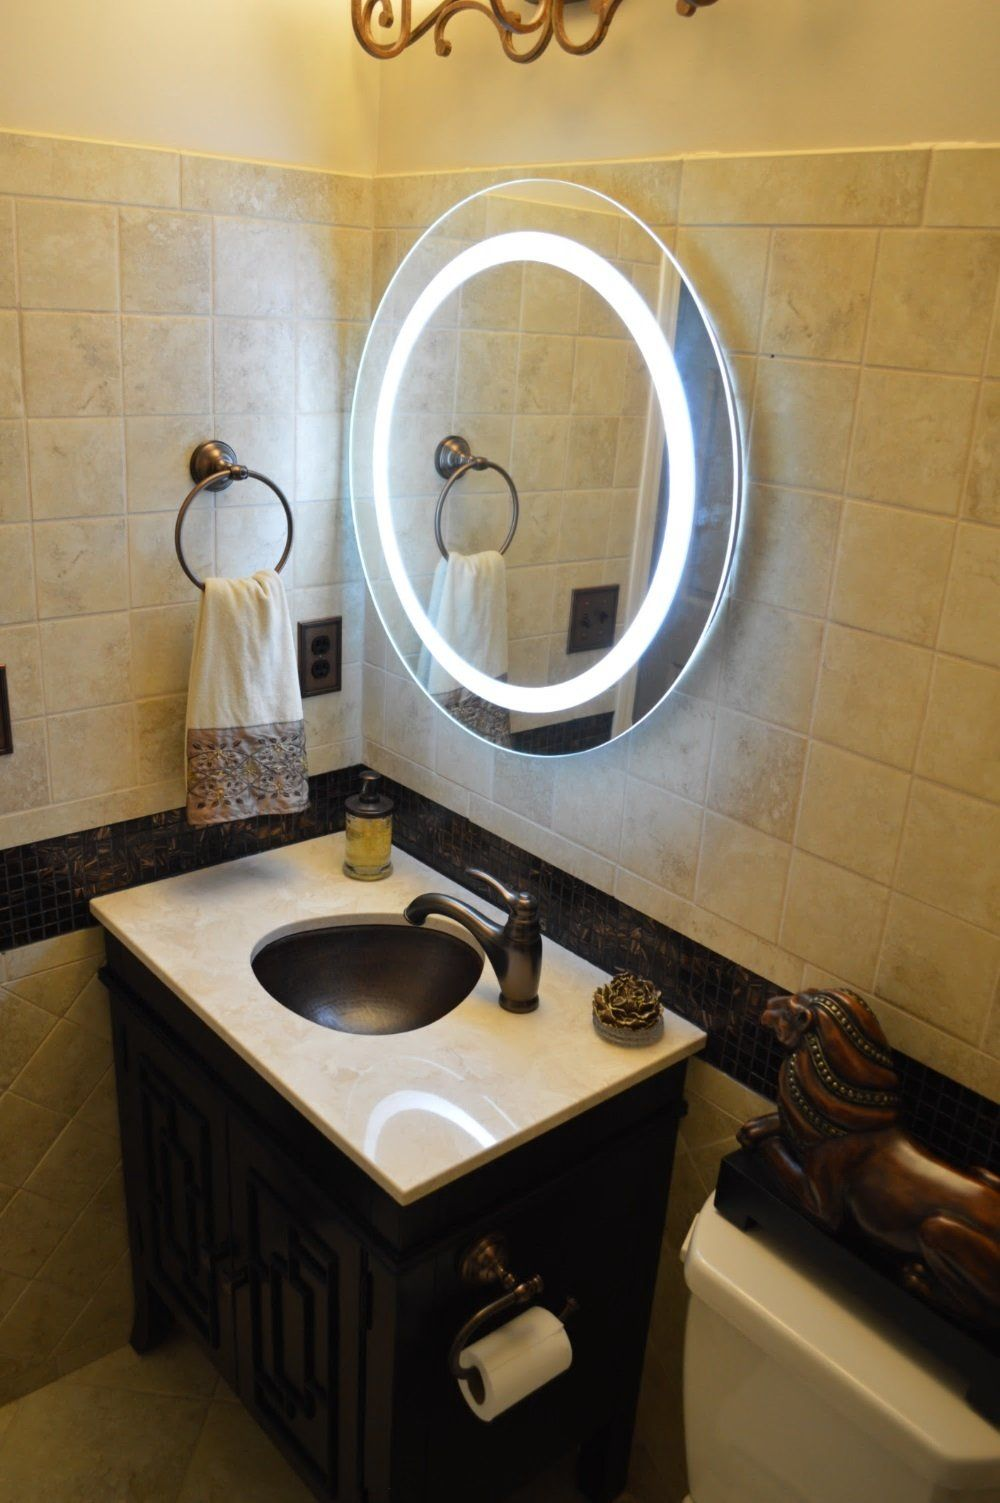 Front Lighted Led Bathroom Vanity Mirror 28 Wide X 28 Tall Round Wall Mounted With Images Modern Bathroom Mirrors Bathroom Mirror Round Mirror Bathroom